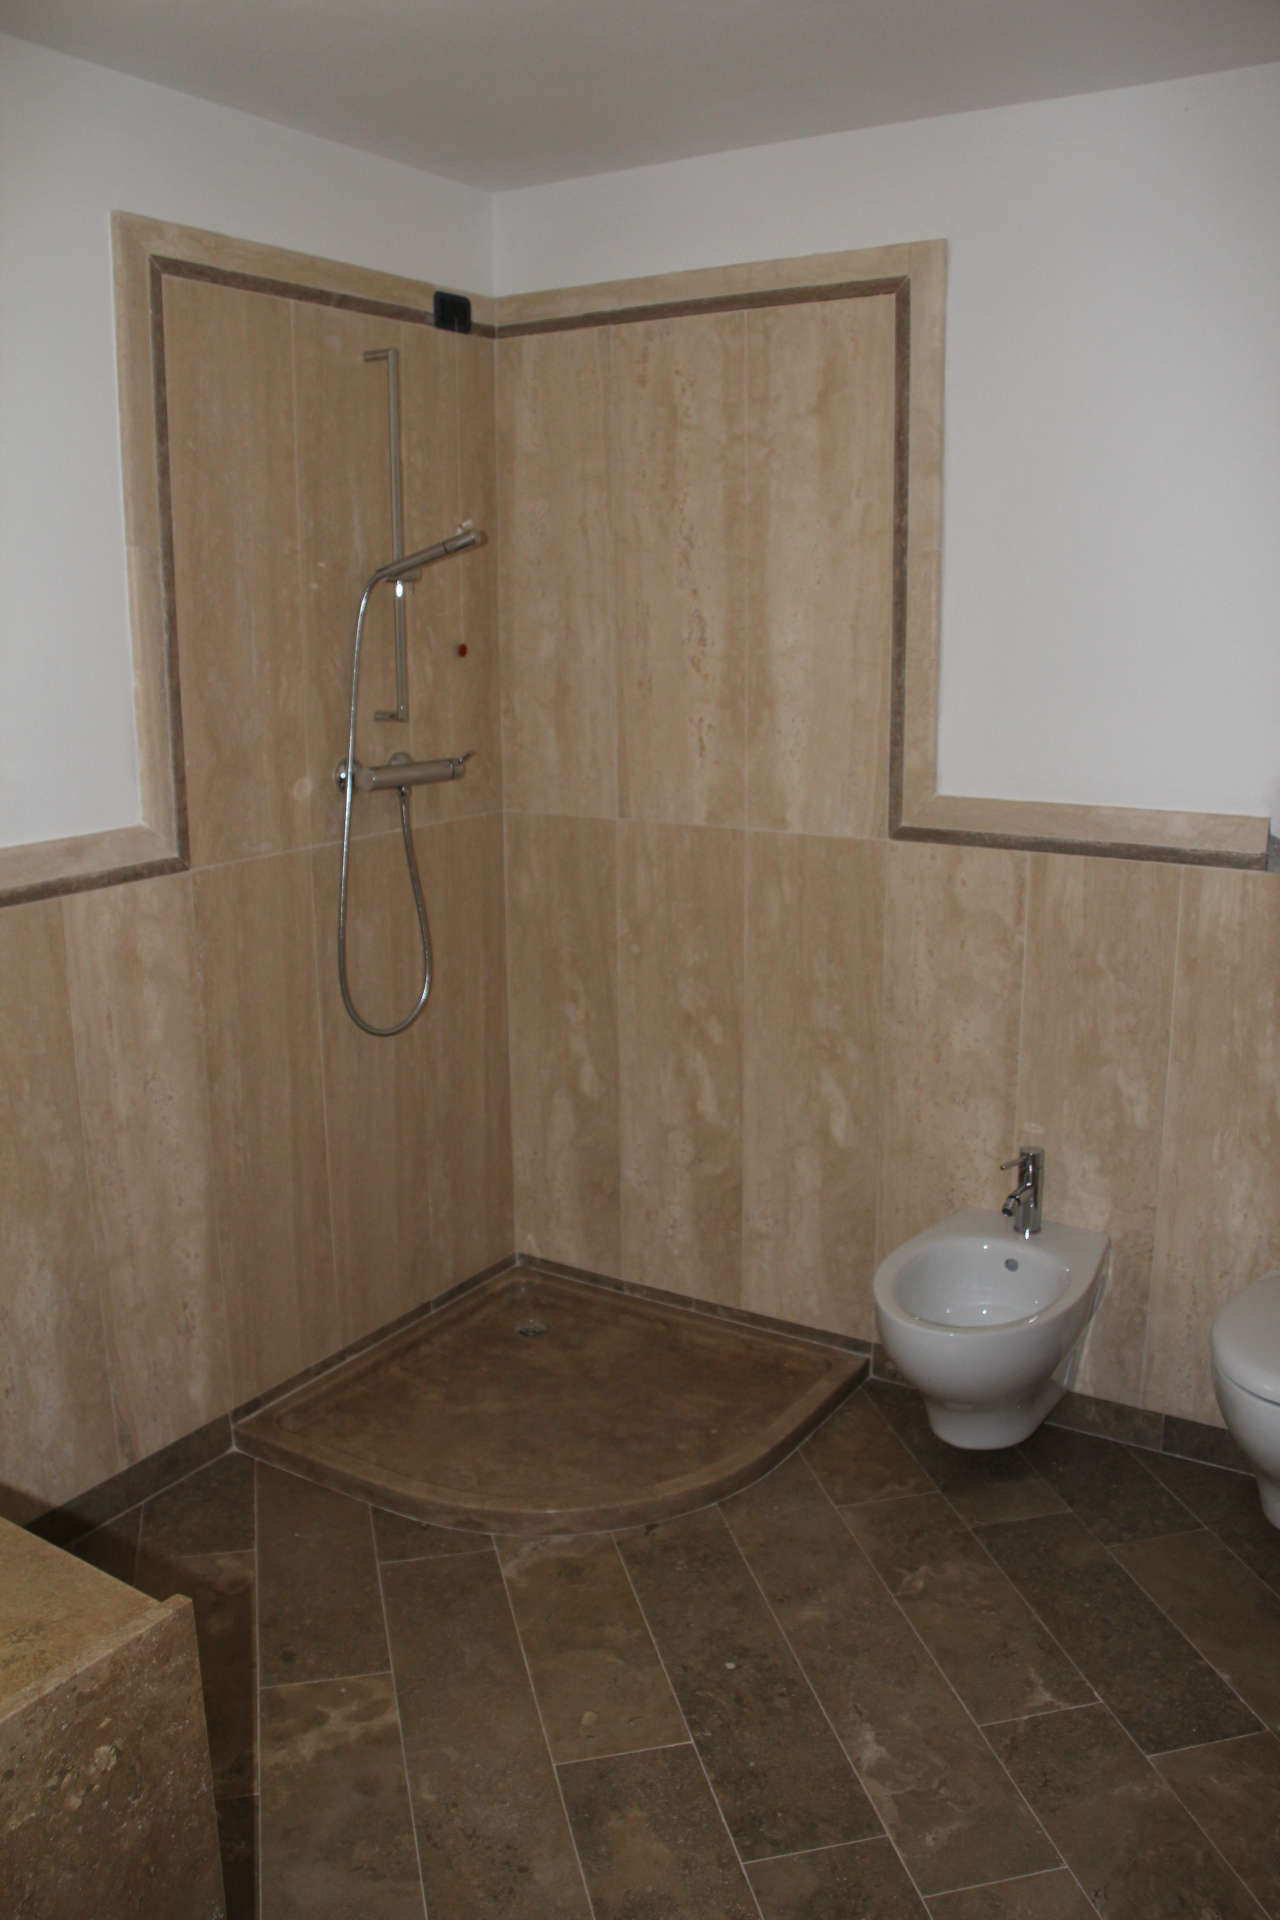 Bagno travertino moderno sweetwaterrescue - Bagno in travertino ...